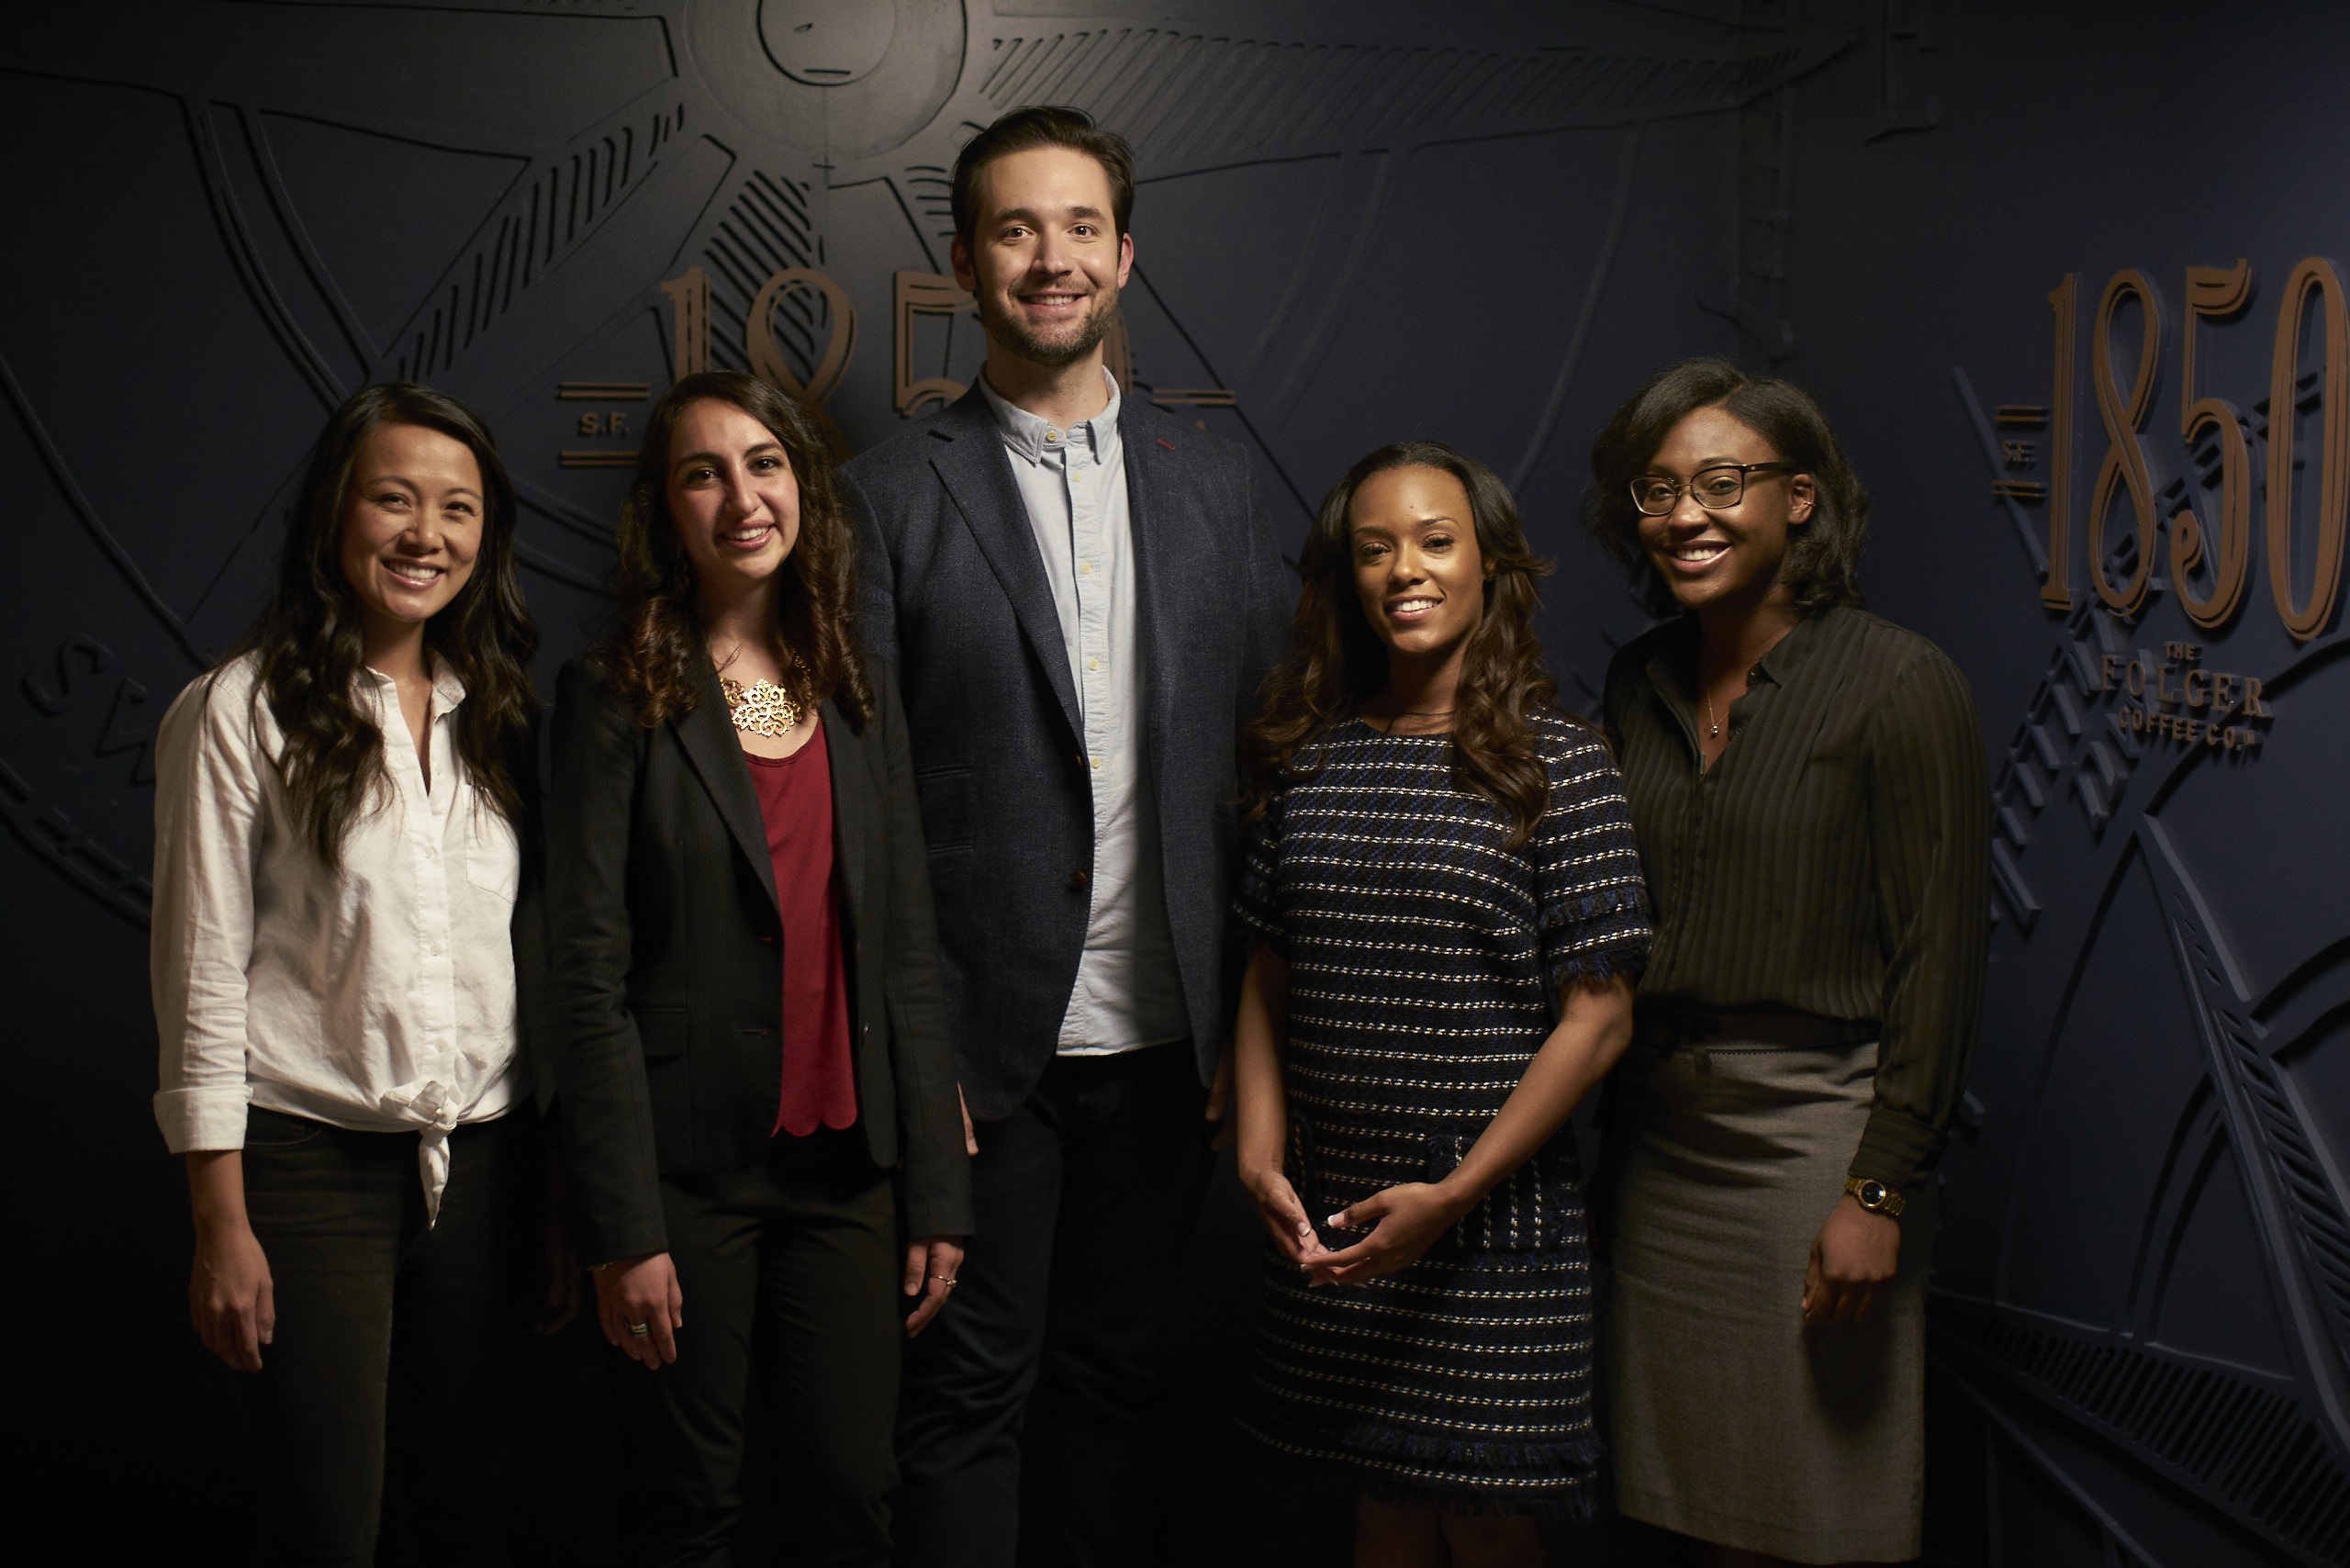 The young, ambitious finalists of the 1850™ Brand Coffee Bold Pioneer Contest (left to right) Alice Kittrell, Soraya Fouladi, Jordan Wilson and Wen-kuni Ceant met with Alexis Ohanian, Initialized Capital and Reddit co-founder, and spokesperson to 1850™ Brand Coffee, for one-on-one mentoring sessions to talk through their bold ideas and address their unique business challenges.